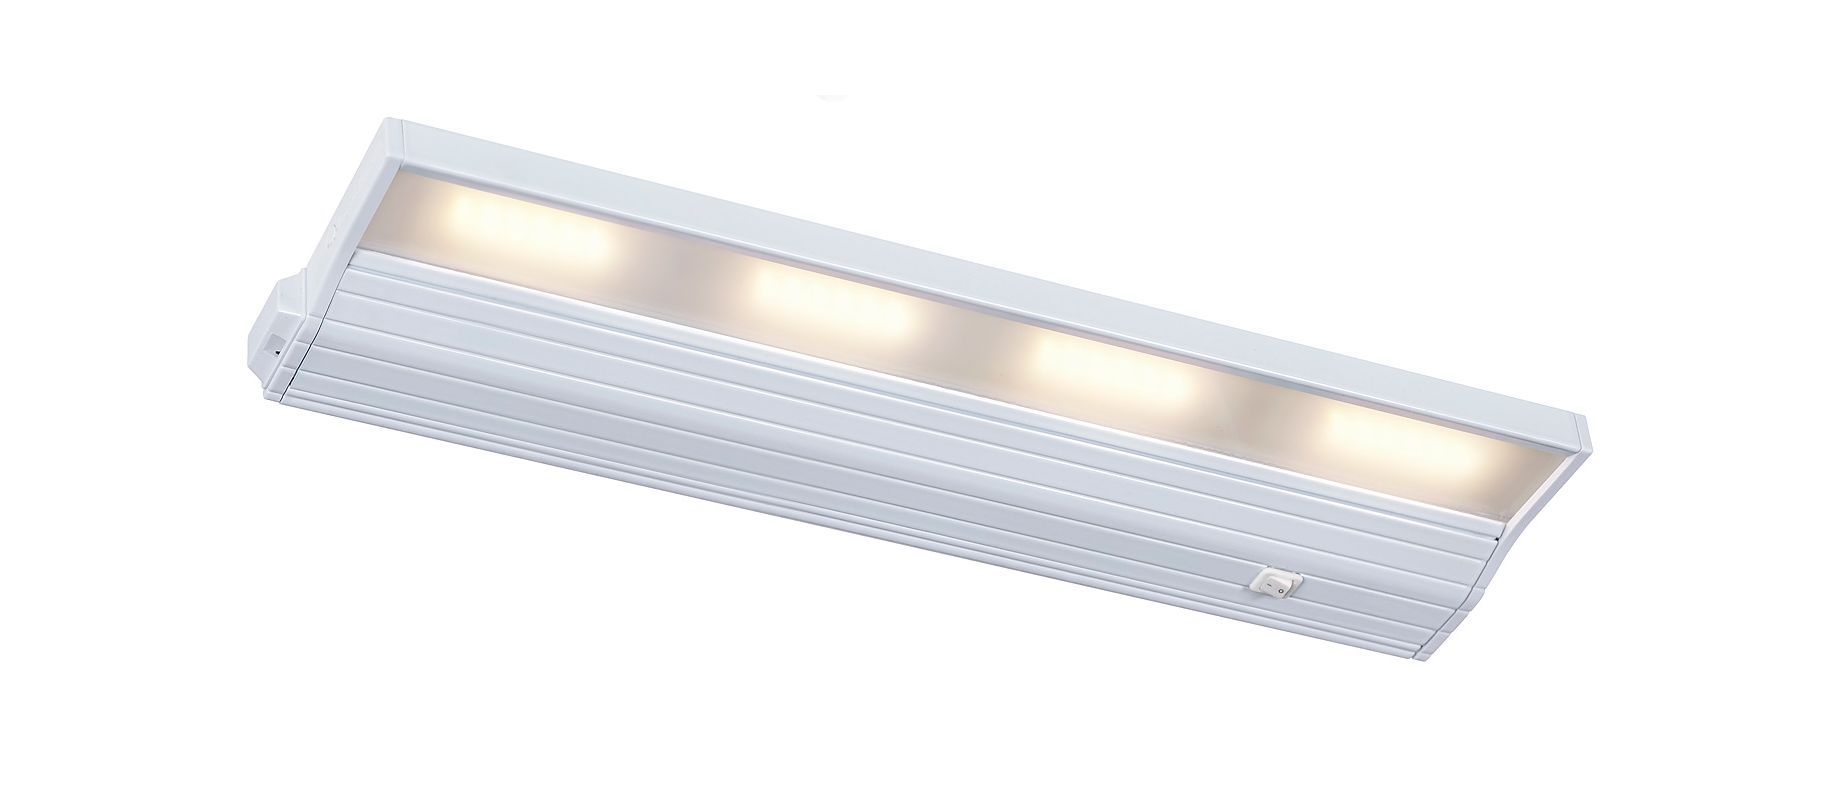 Csl Lighting Ecl 32 32 Inch Ultra Efficient 120v Led Task Lighting From The Eco White Indoor Lighting Under Cabinet Light Bars With Images Led Task Light Bar Lighting Led